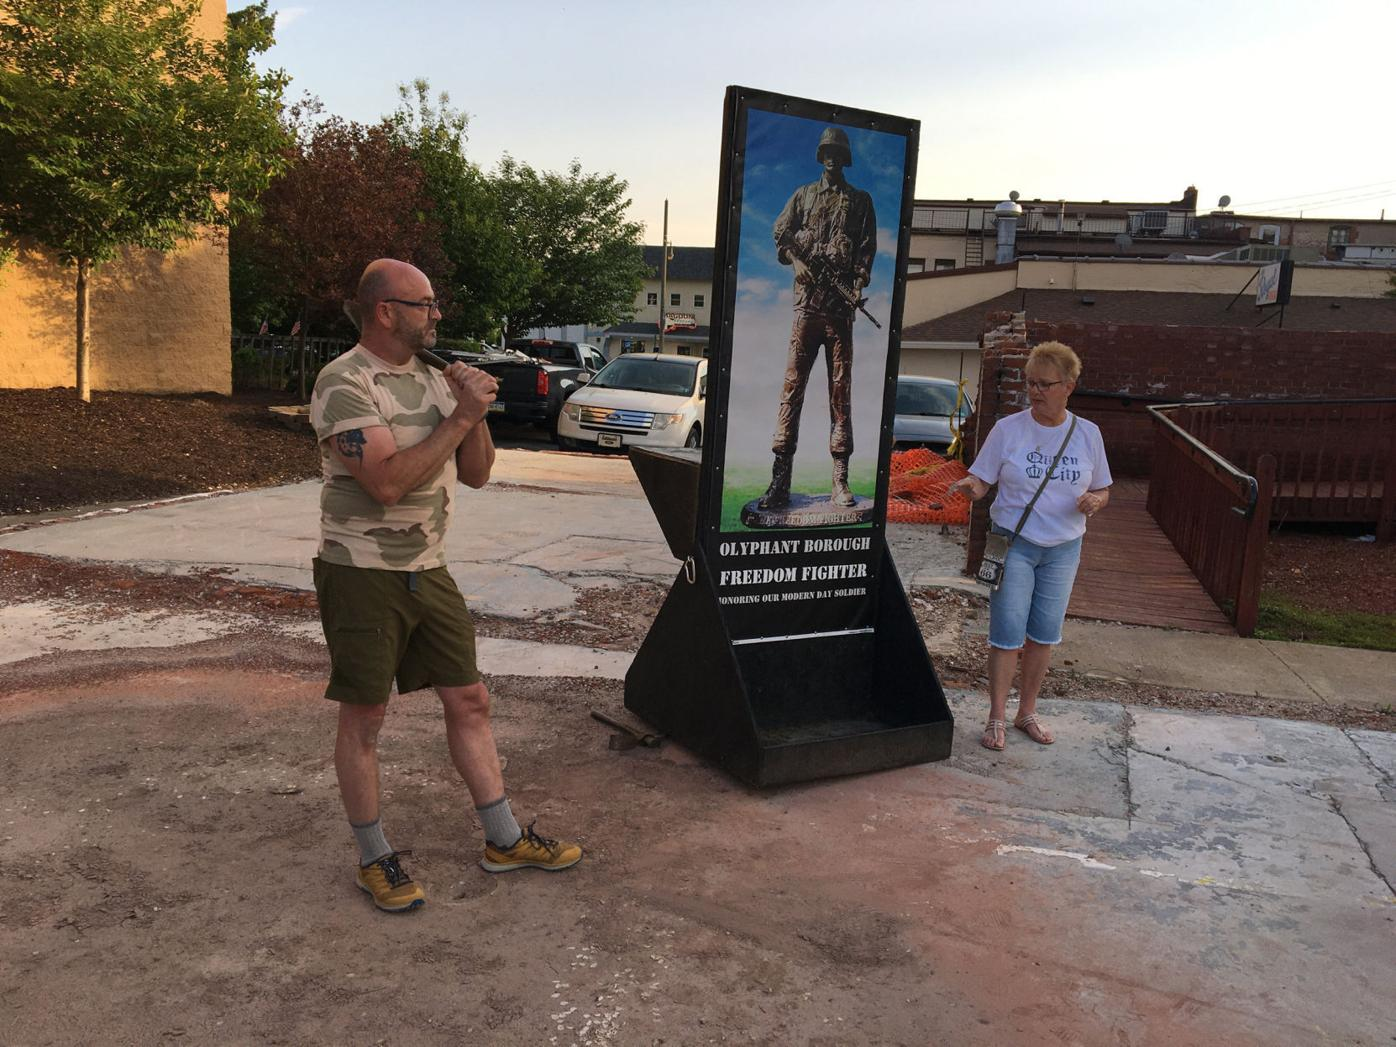 Out&About at the dedication of the new location of the Freedom Fighter statue in Olyphant